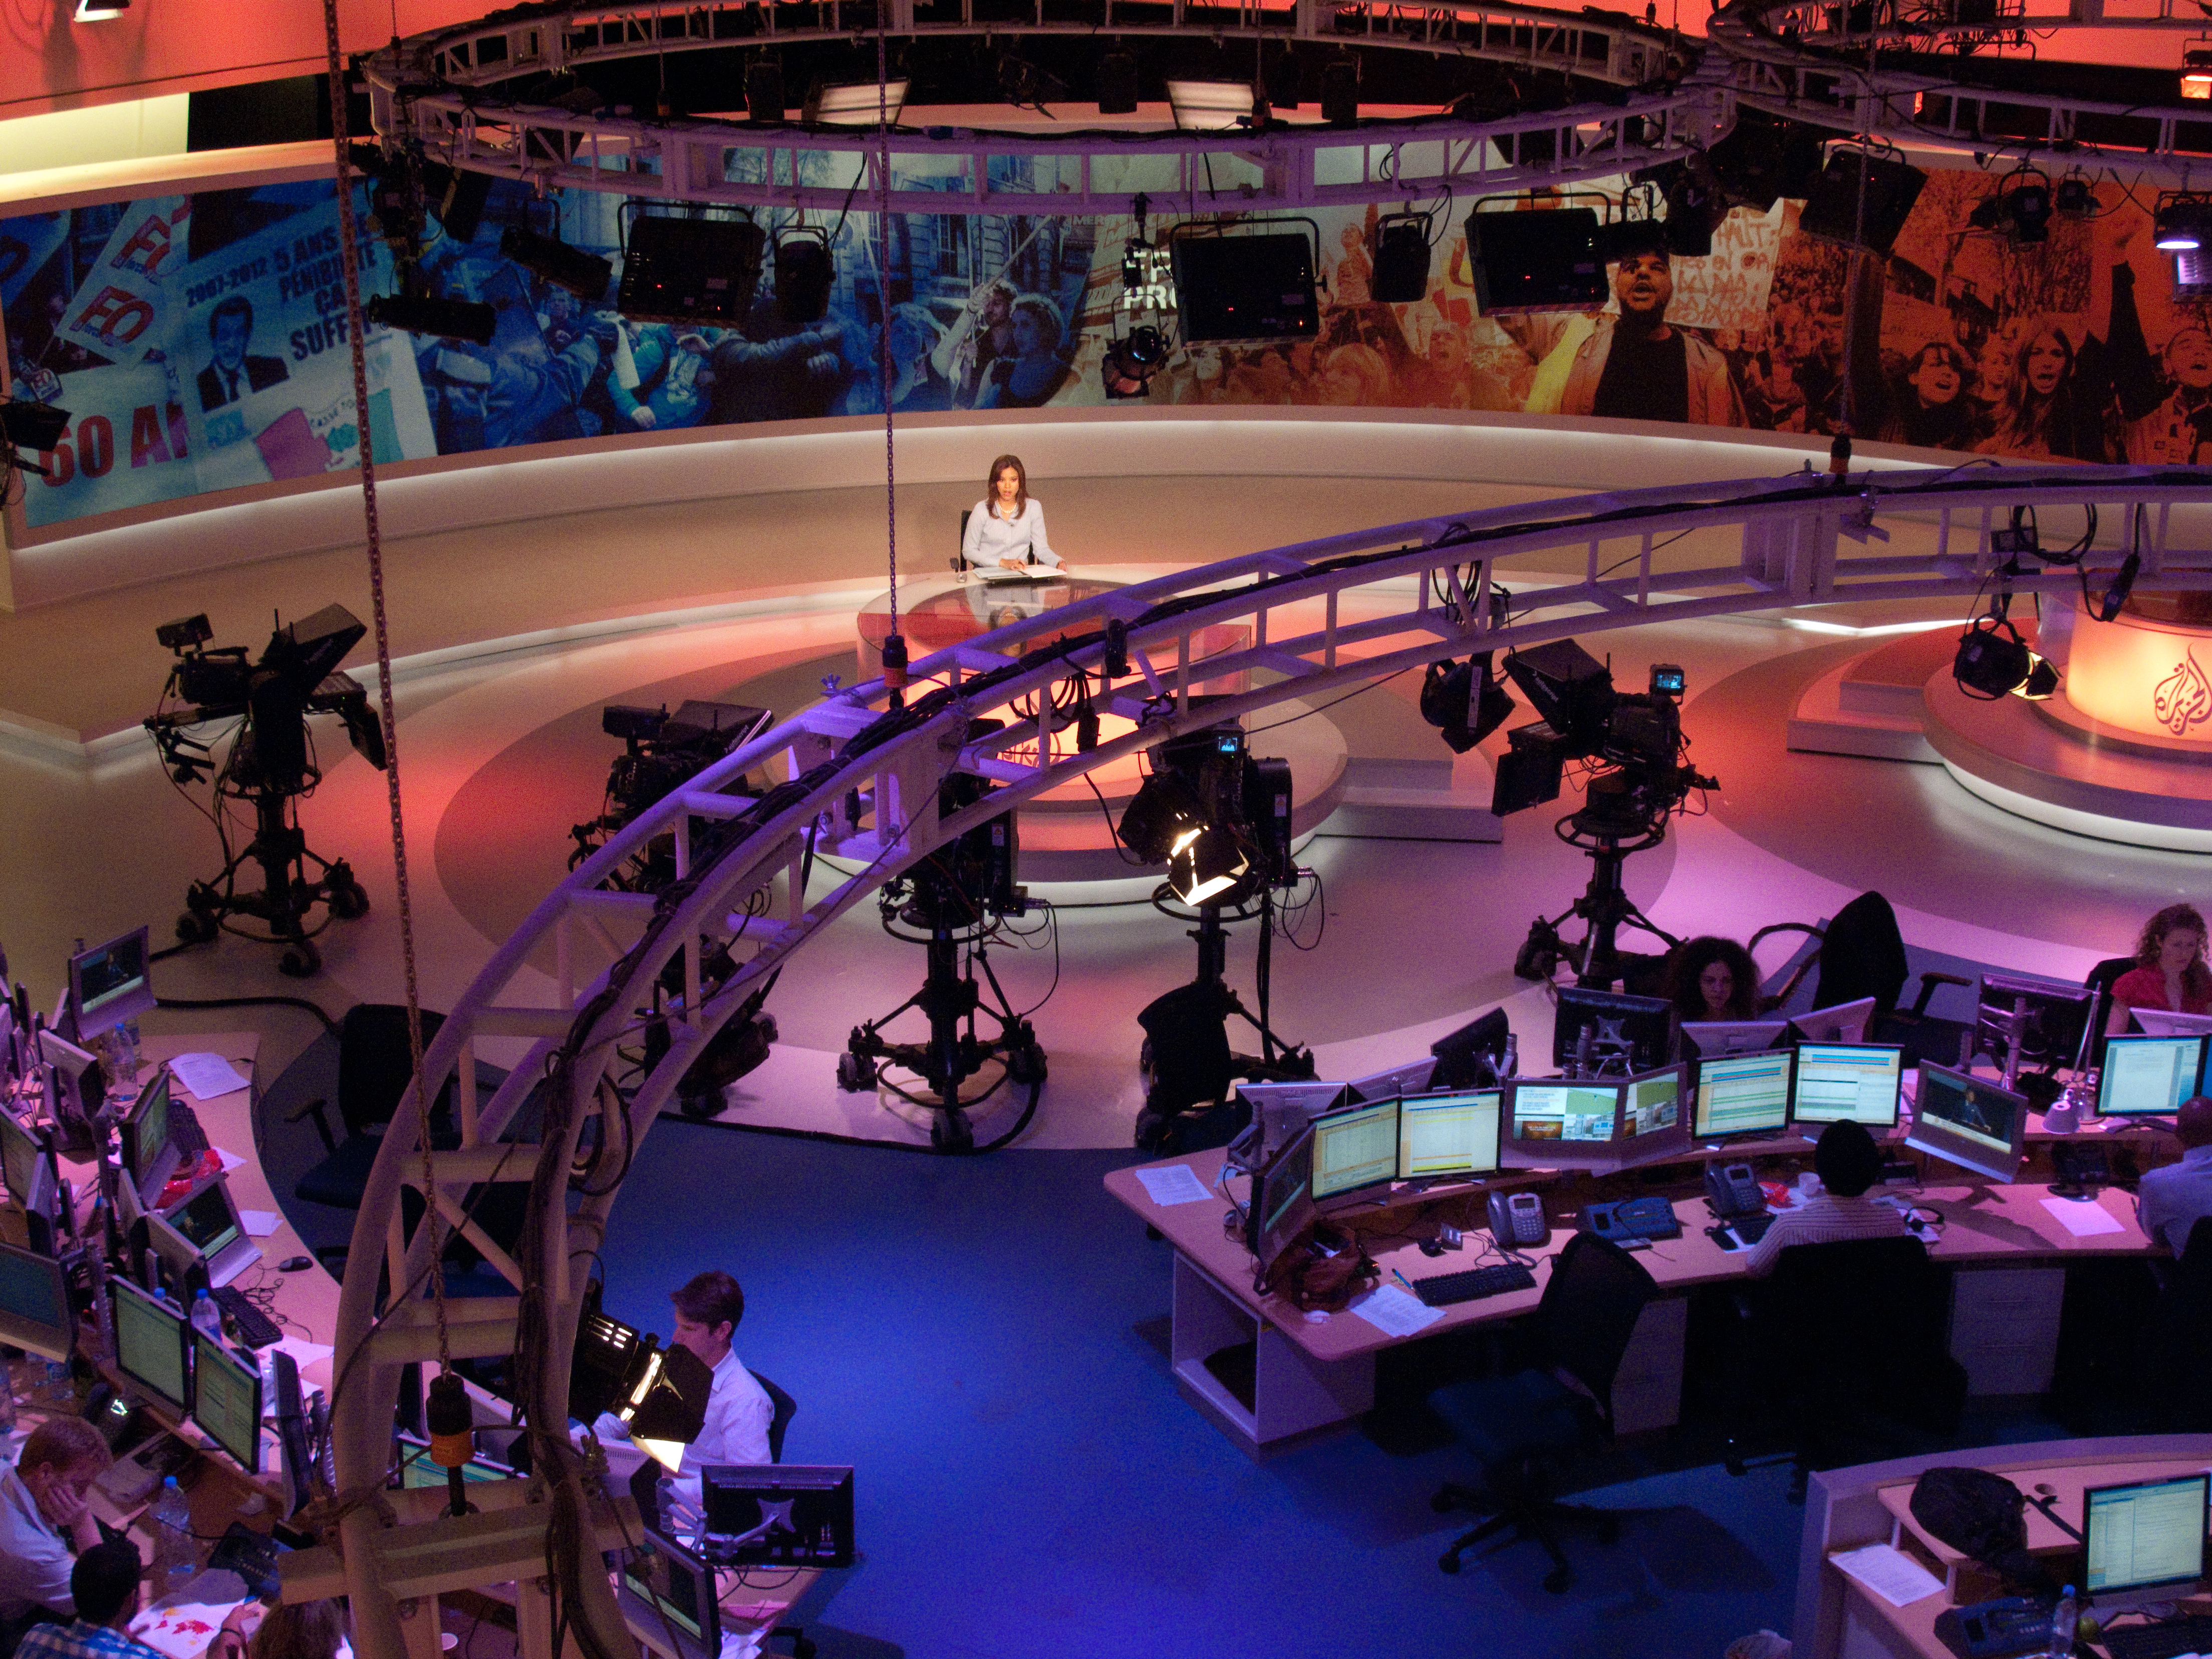 Al Jazeera and the Gulf Crisis: Consequences of Partial Press Freedom